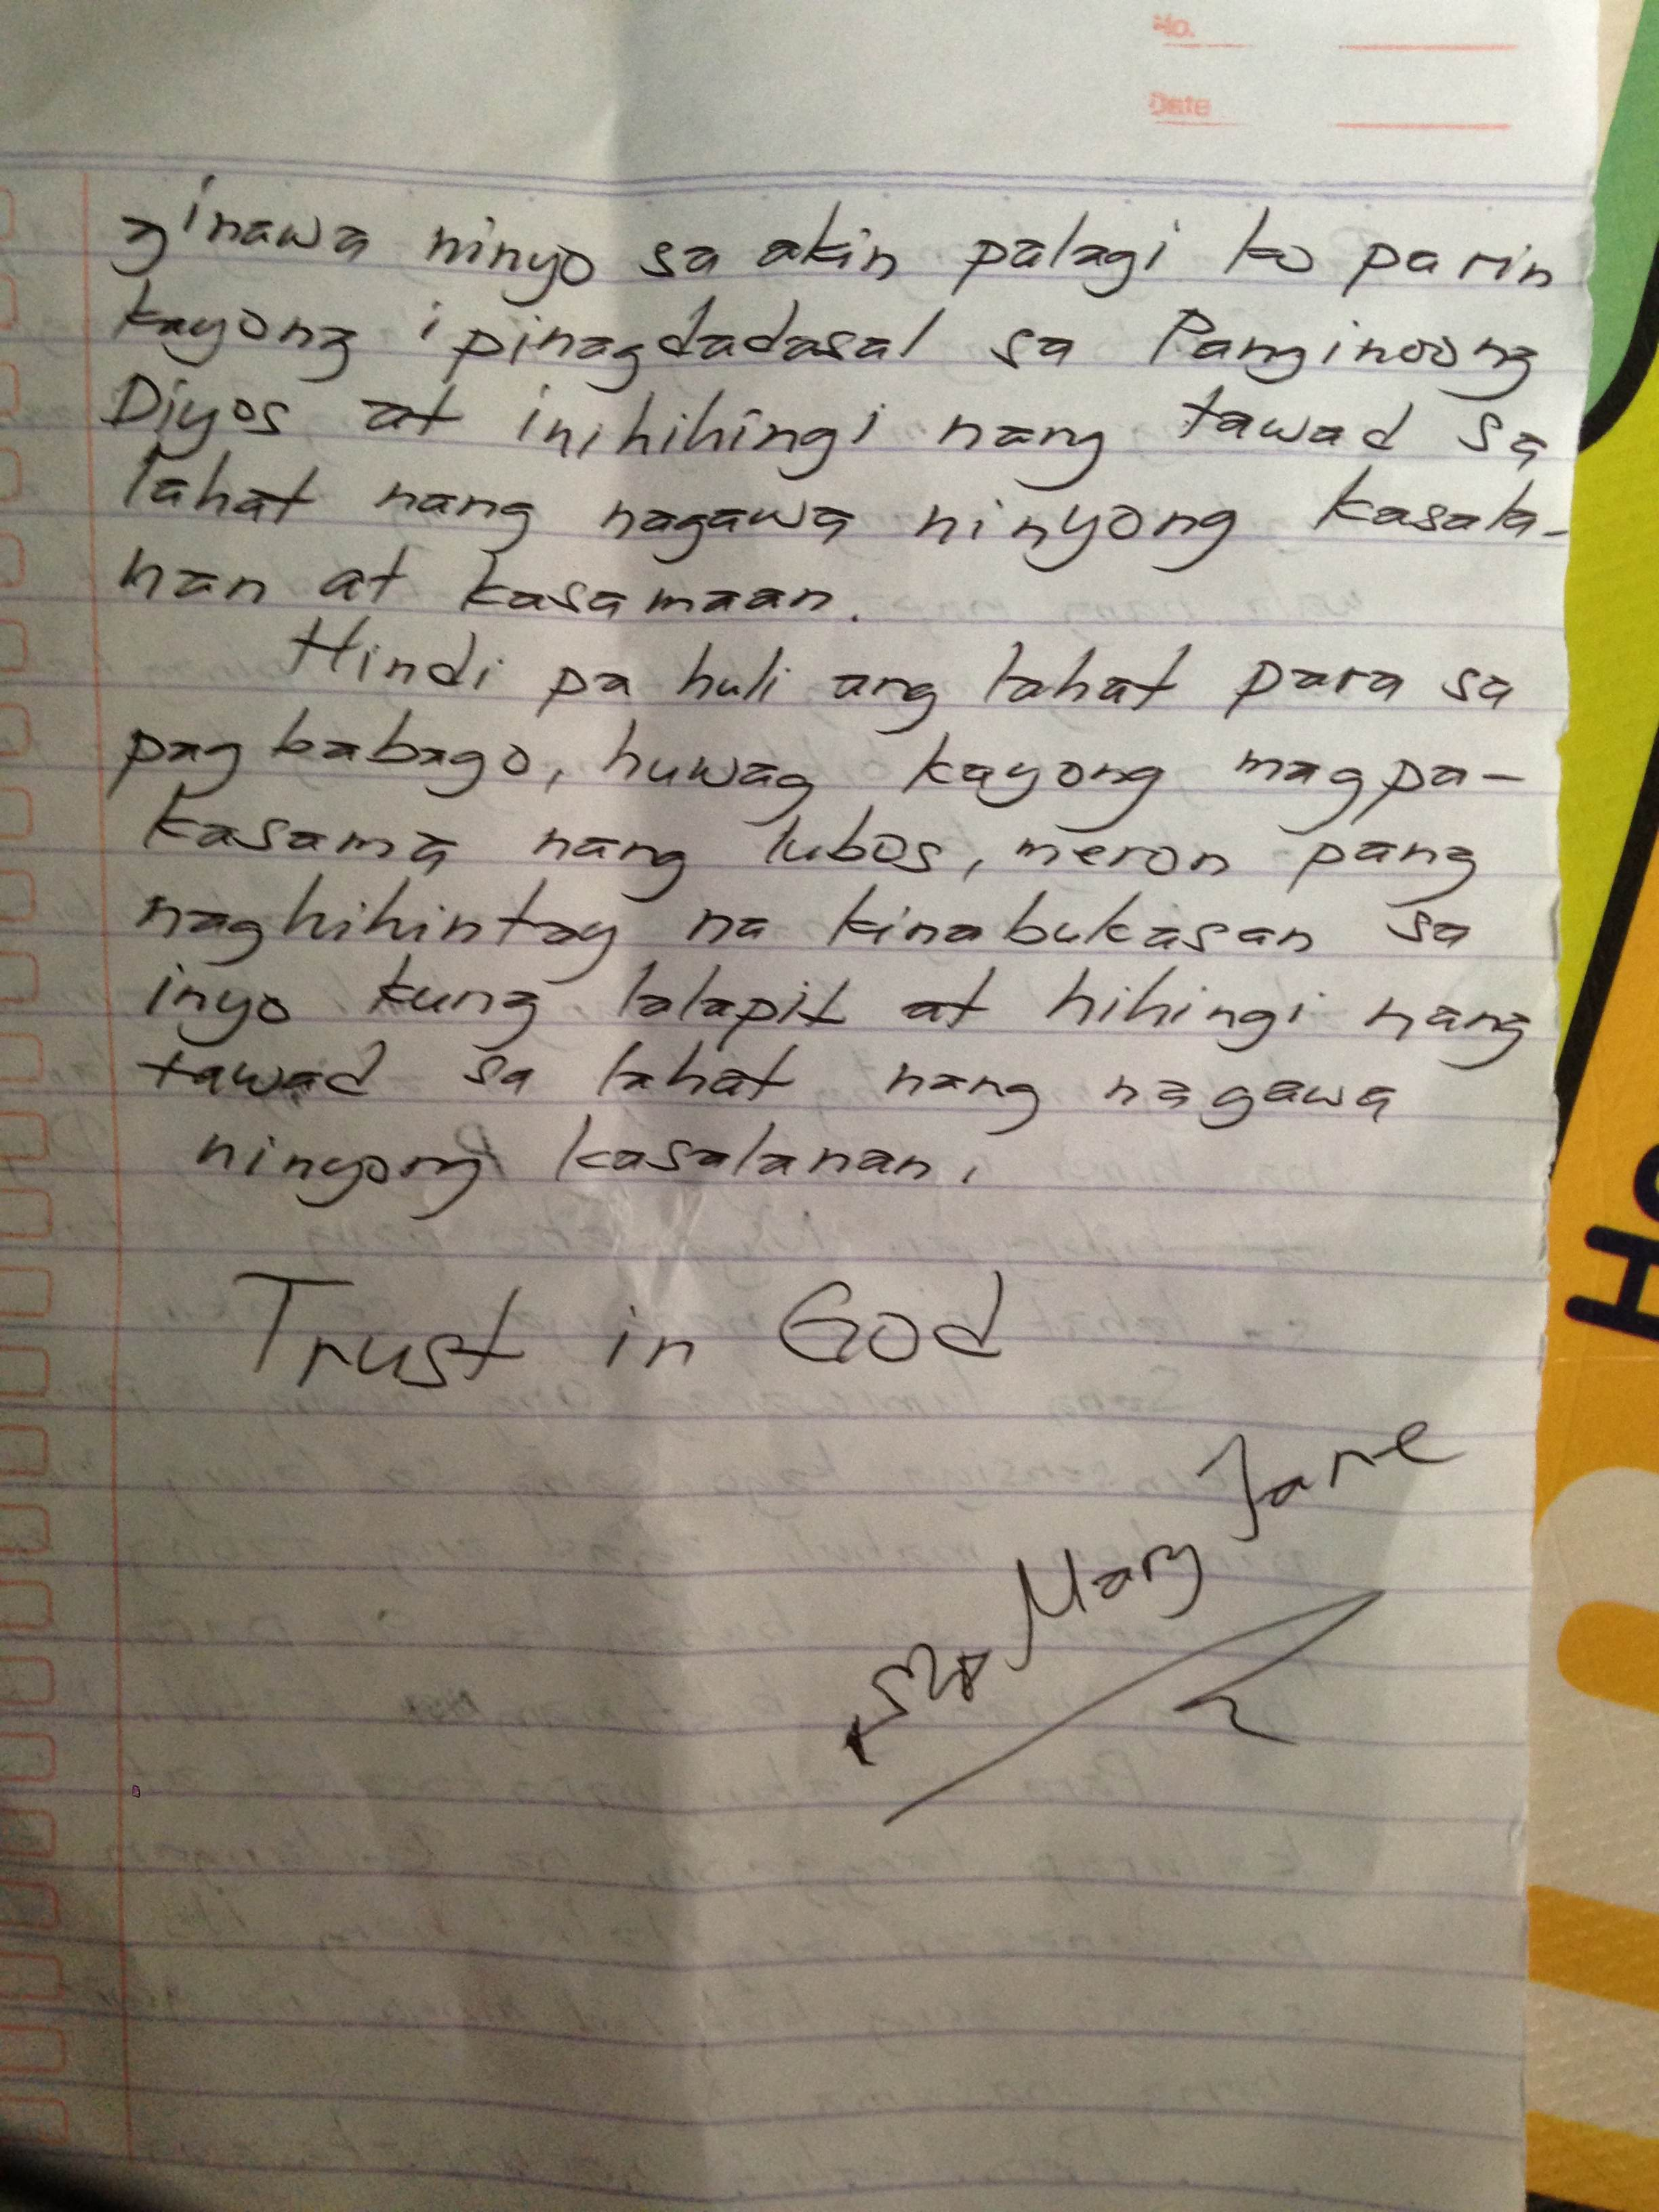 Sample Resignation Letter For Barangay Officials